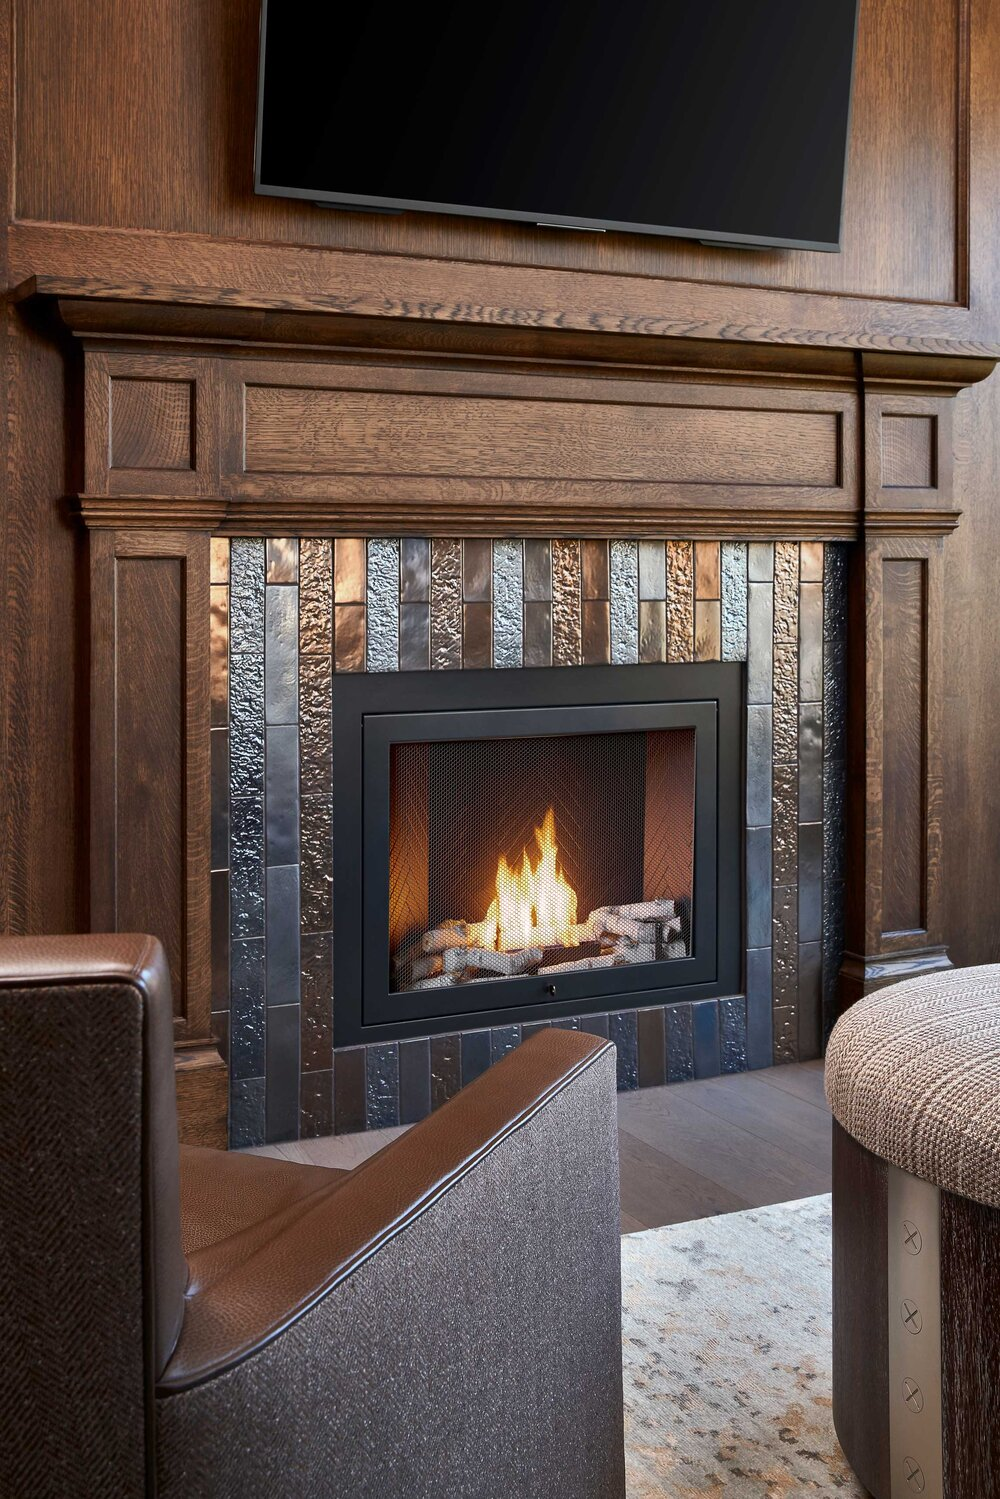 https://mk0hearthcabinej16d7.kinstacdn.com/wp-content/uploads/2020/08/Tracy-Morris-Design-and-Greg-Powers-Photography-hearthcabinet-residential-luxury-fireplace-designs.3.jpg